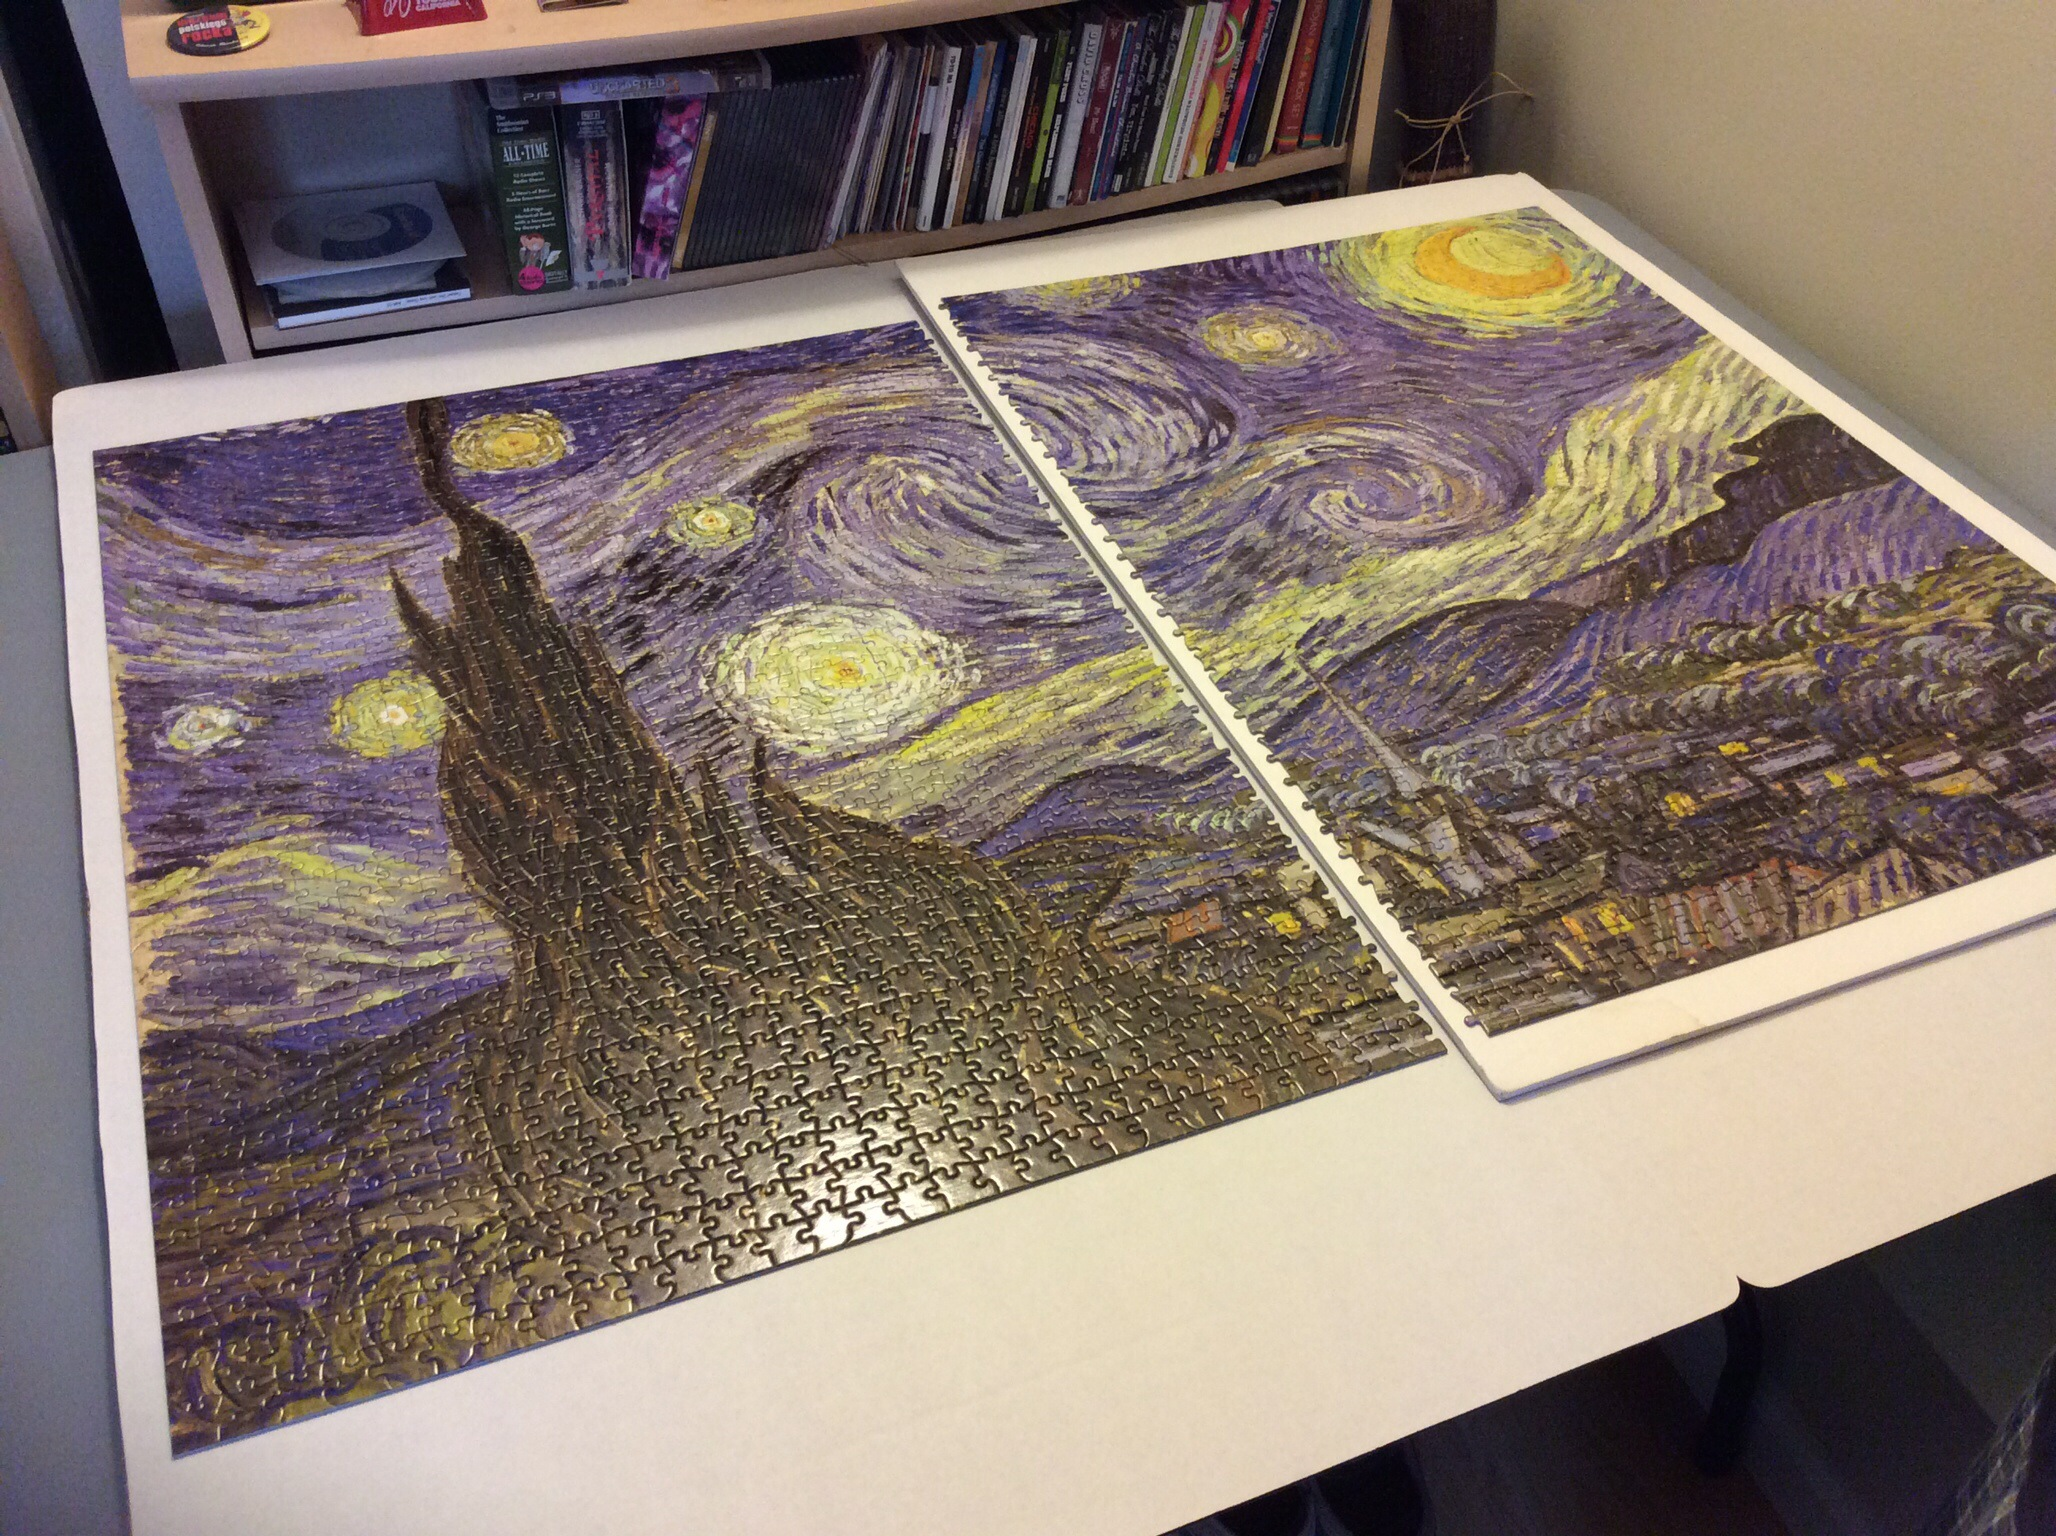 The The Starry Night Puzzle